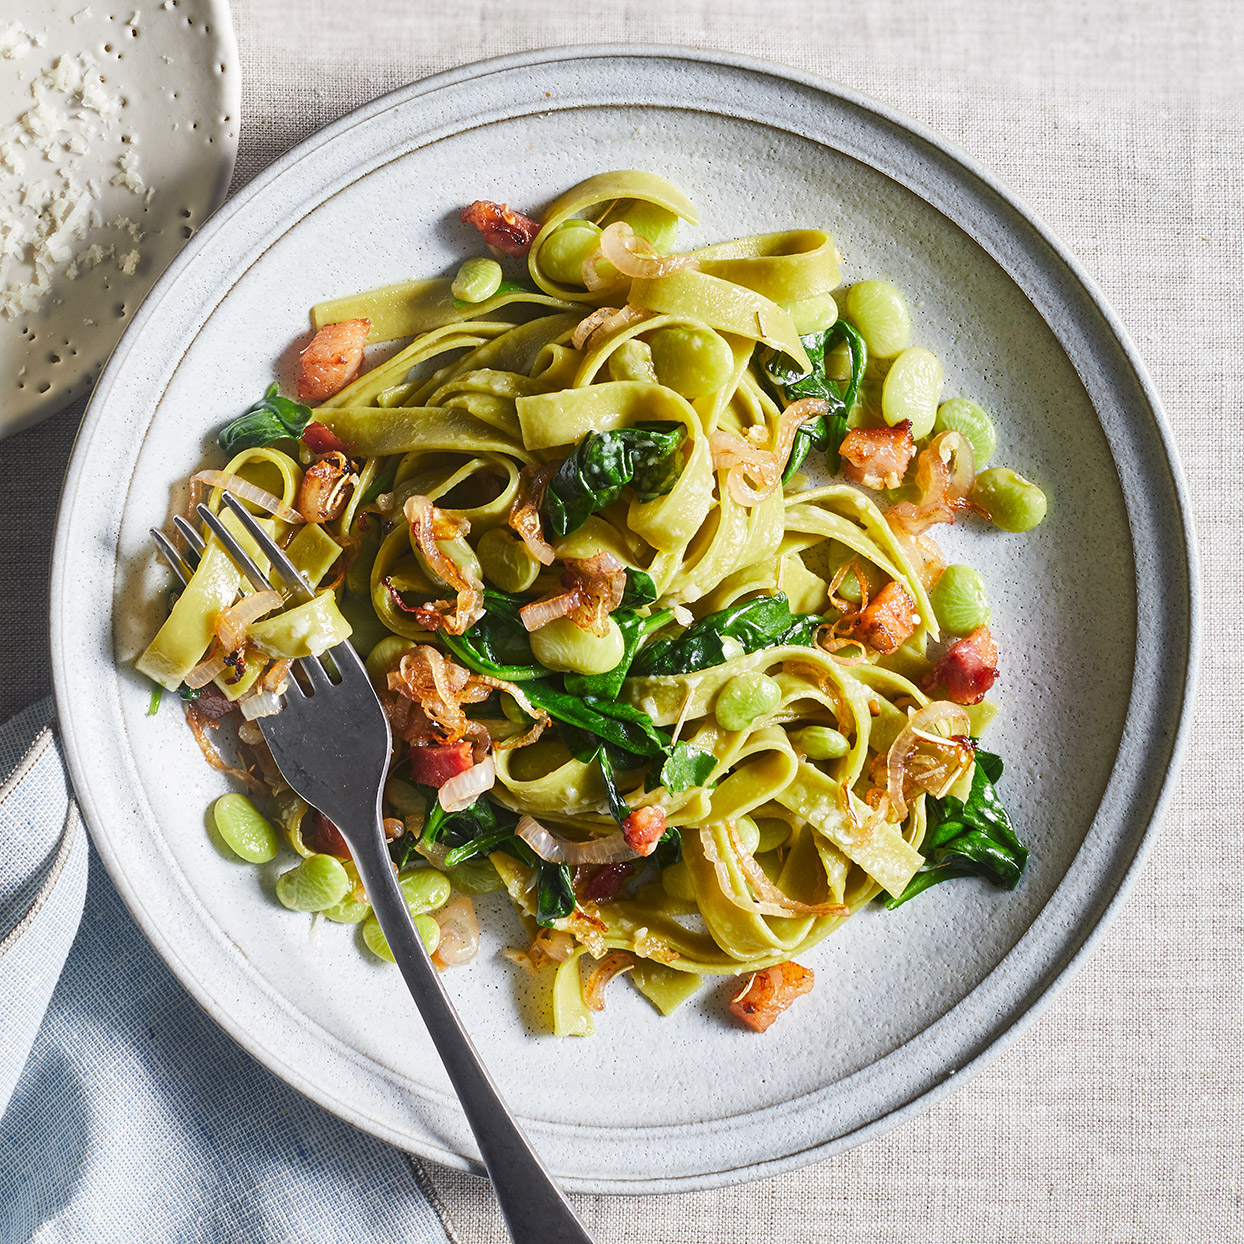 We opt for fresh spinach pasta here--it cooks quickly and adds a pop of color. Cooking lima beans in pancetta drippings infuses them with flavor.